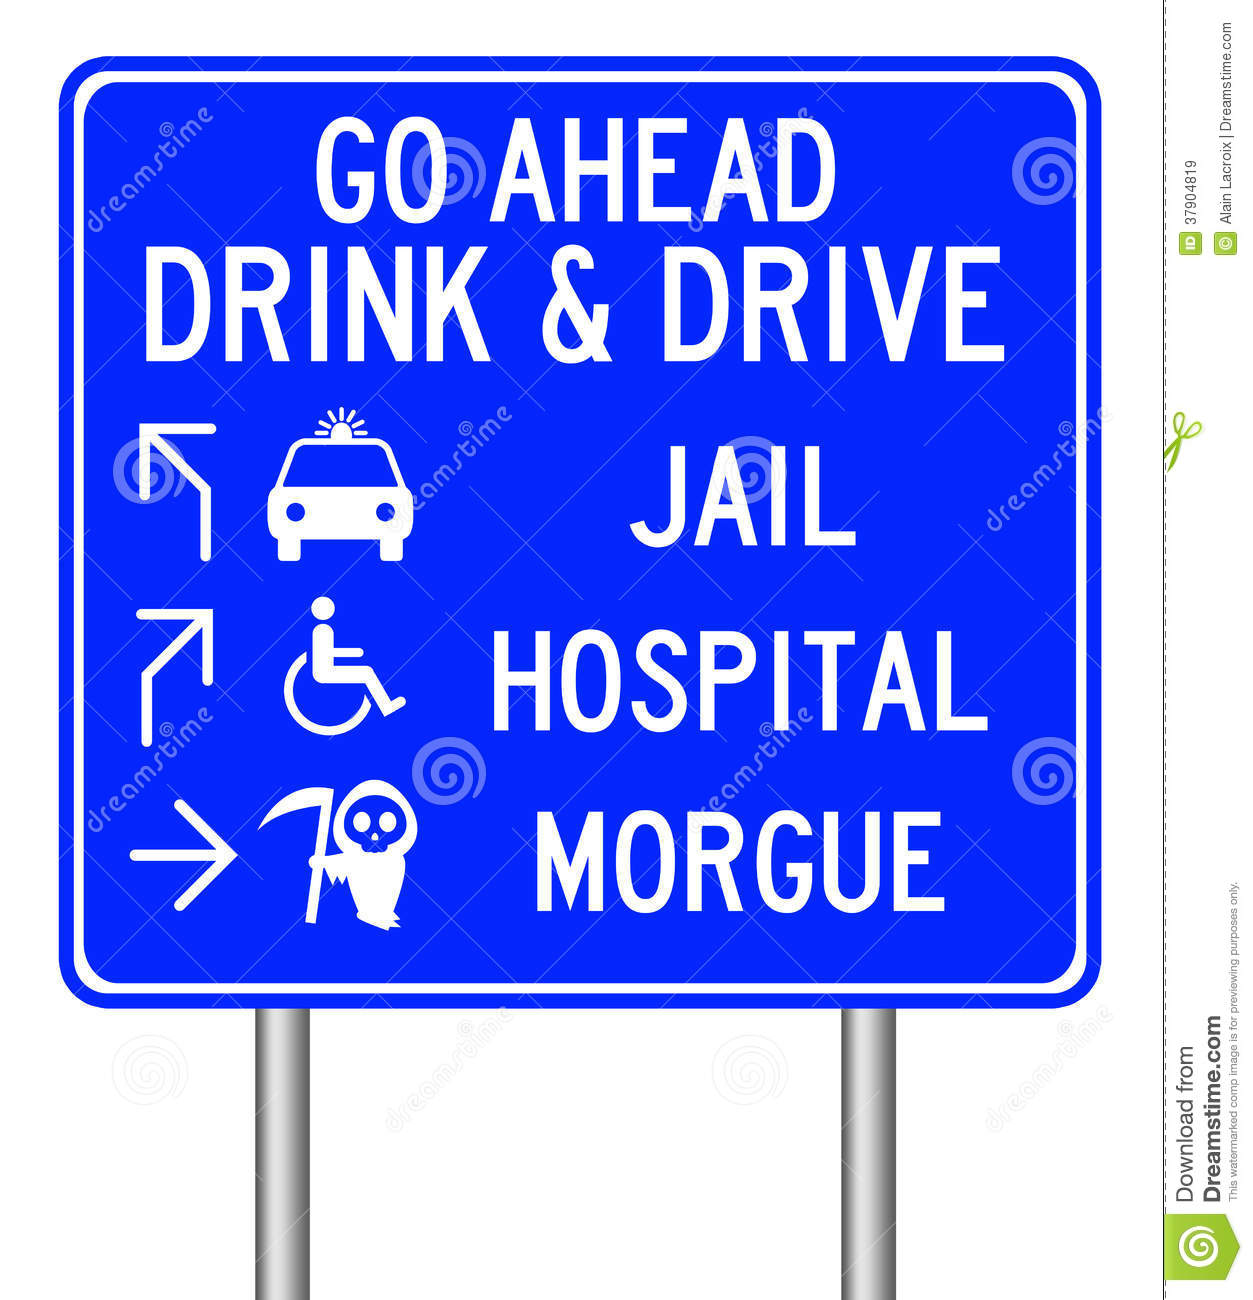 essay about problems of drinking and driving Most of us know someone that has been effected by a drunk driver it is important  that we understand the complete, and dangerous consequences learn more.